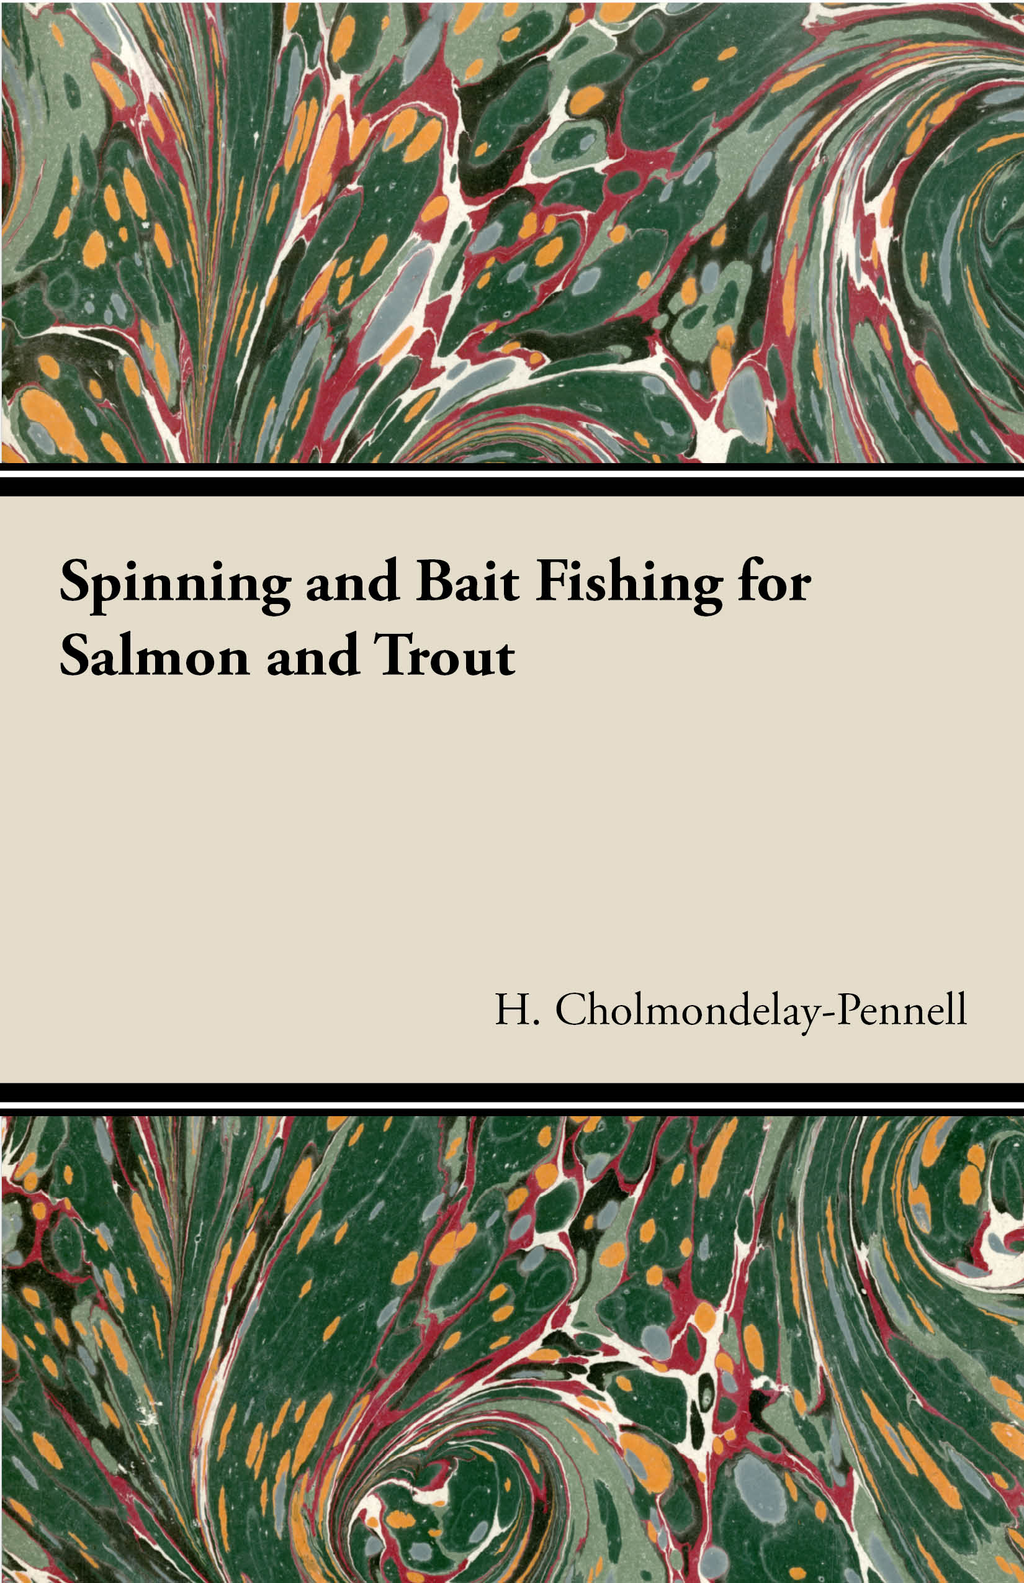 Spinning And Bait Fishing For Salmon And Trout By: H. Cholmondelay-Pennell